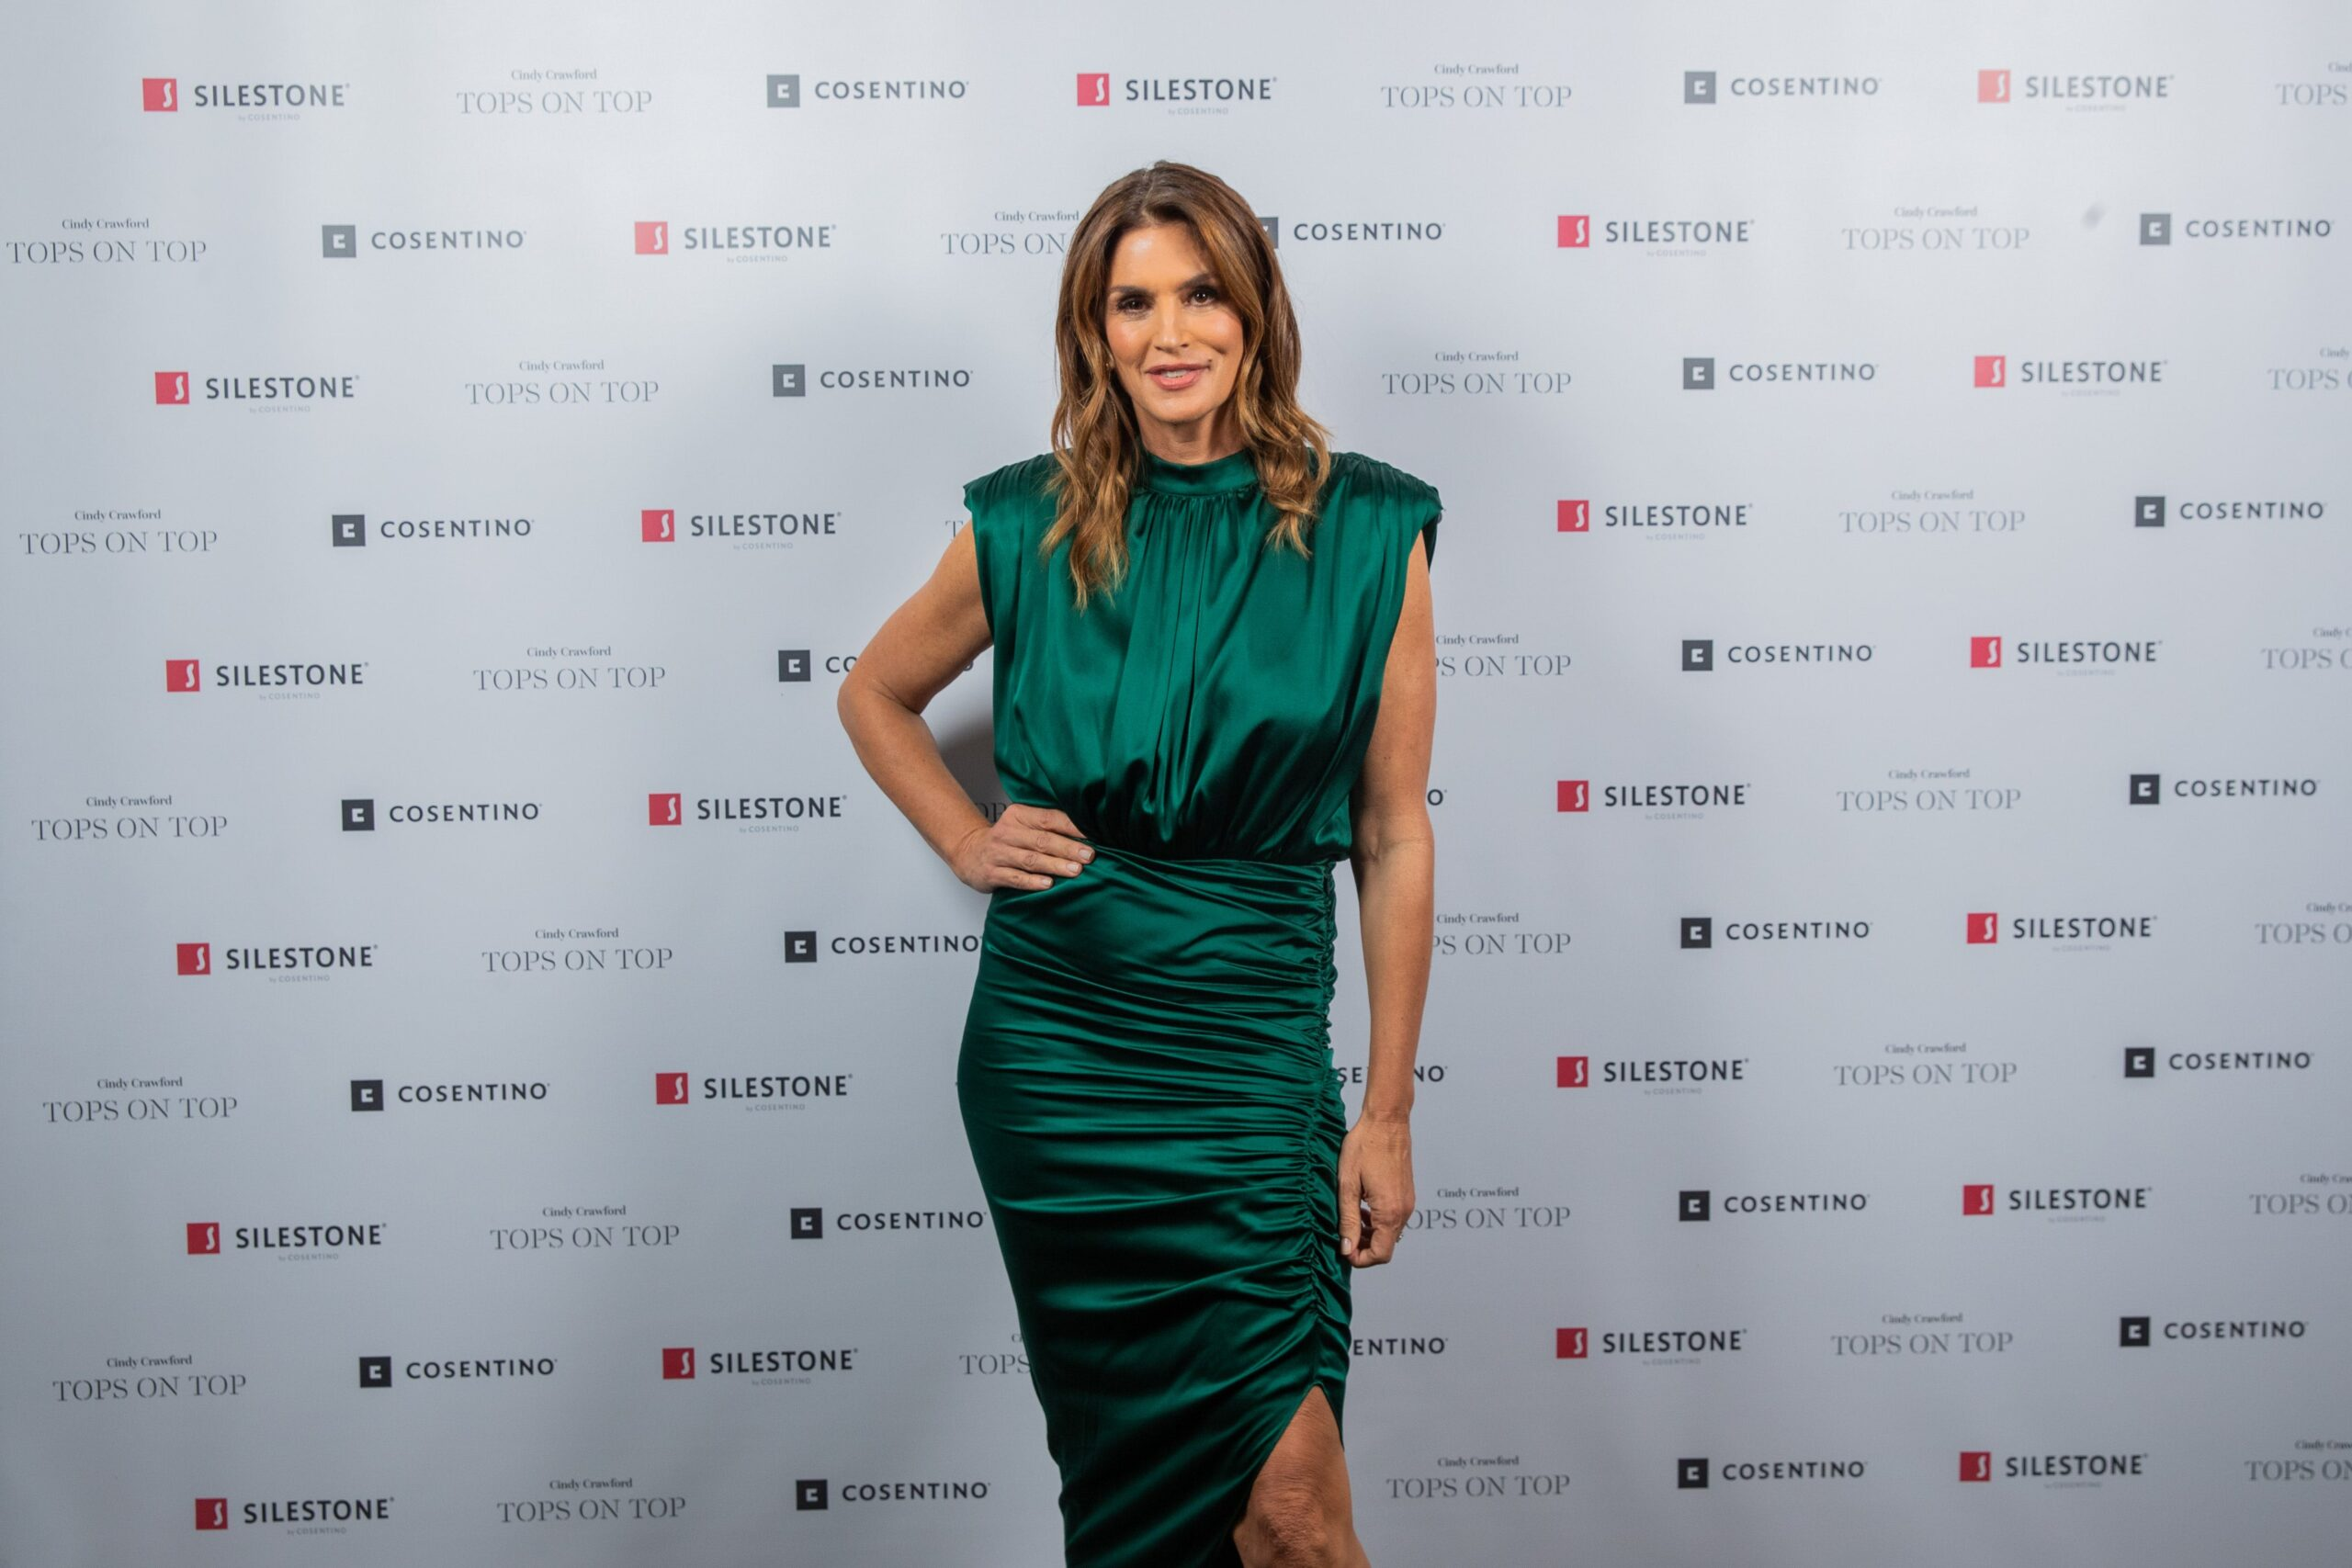 """Image of Cindy Crawford Silestone Londres 3 scaled in Silestone® Presents its New """"Tops on Top 2019"""" Campaign Featuring Cindy Crawford - Cosentino"""